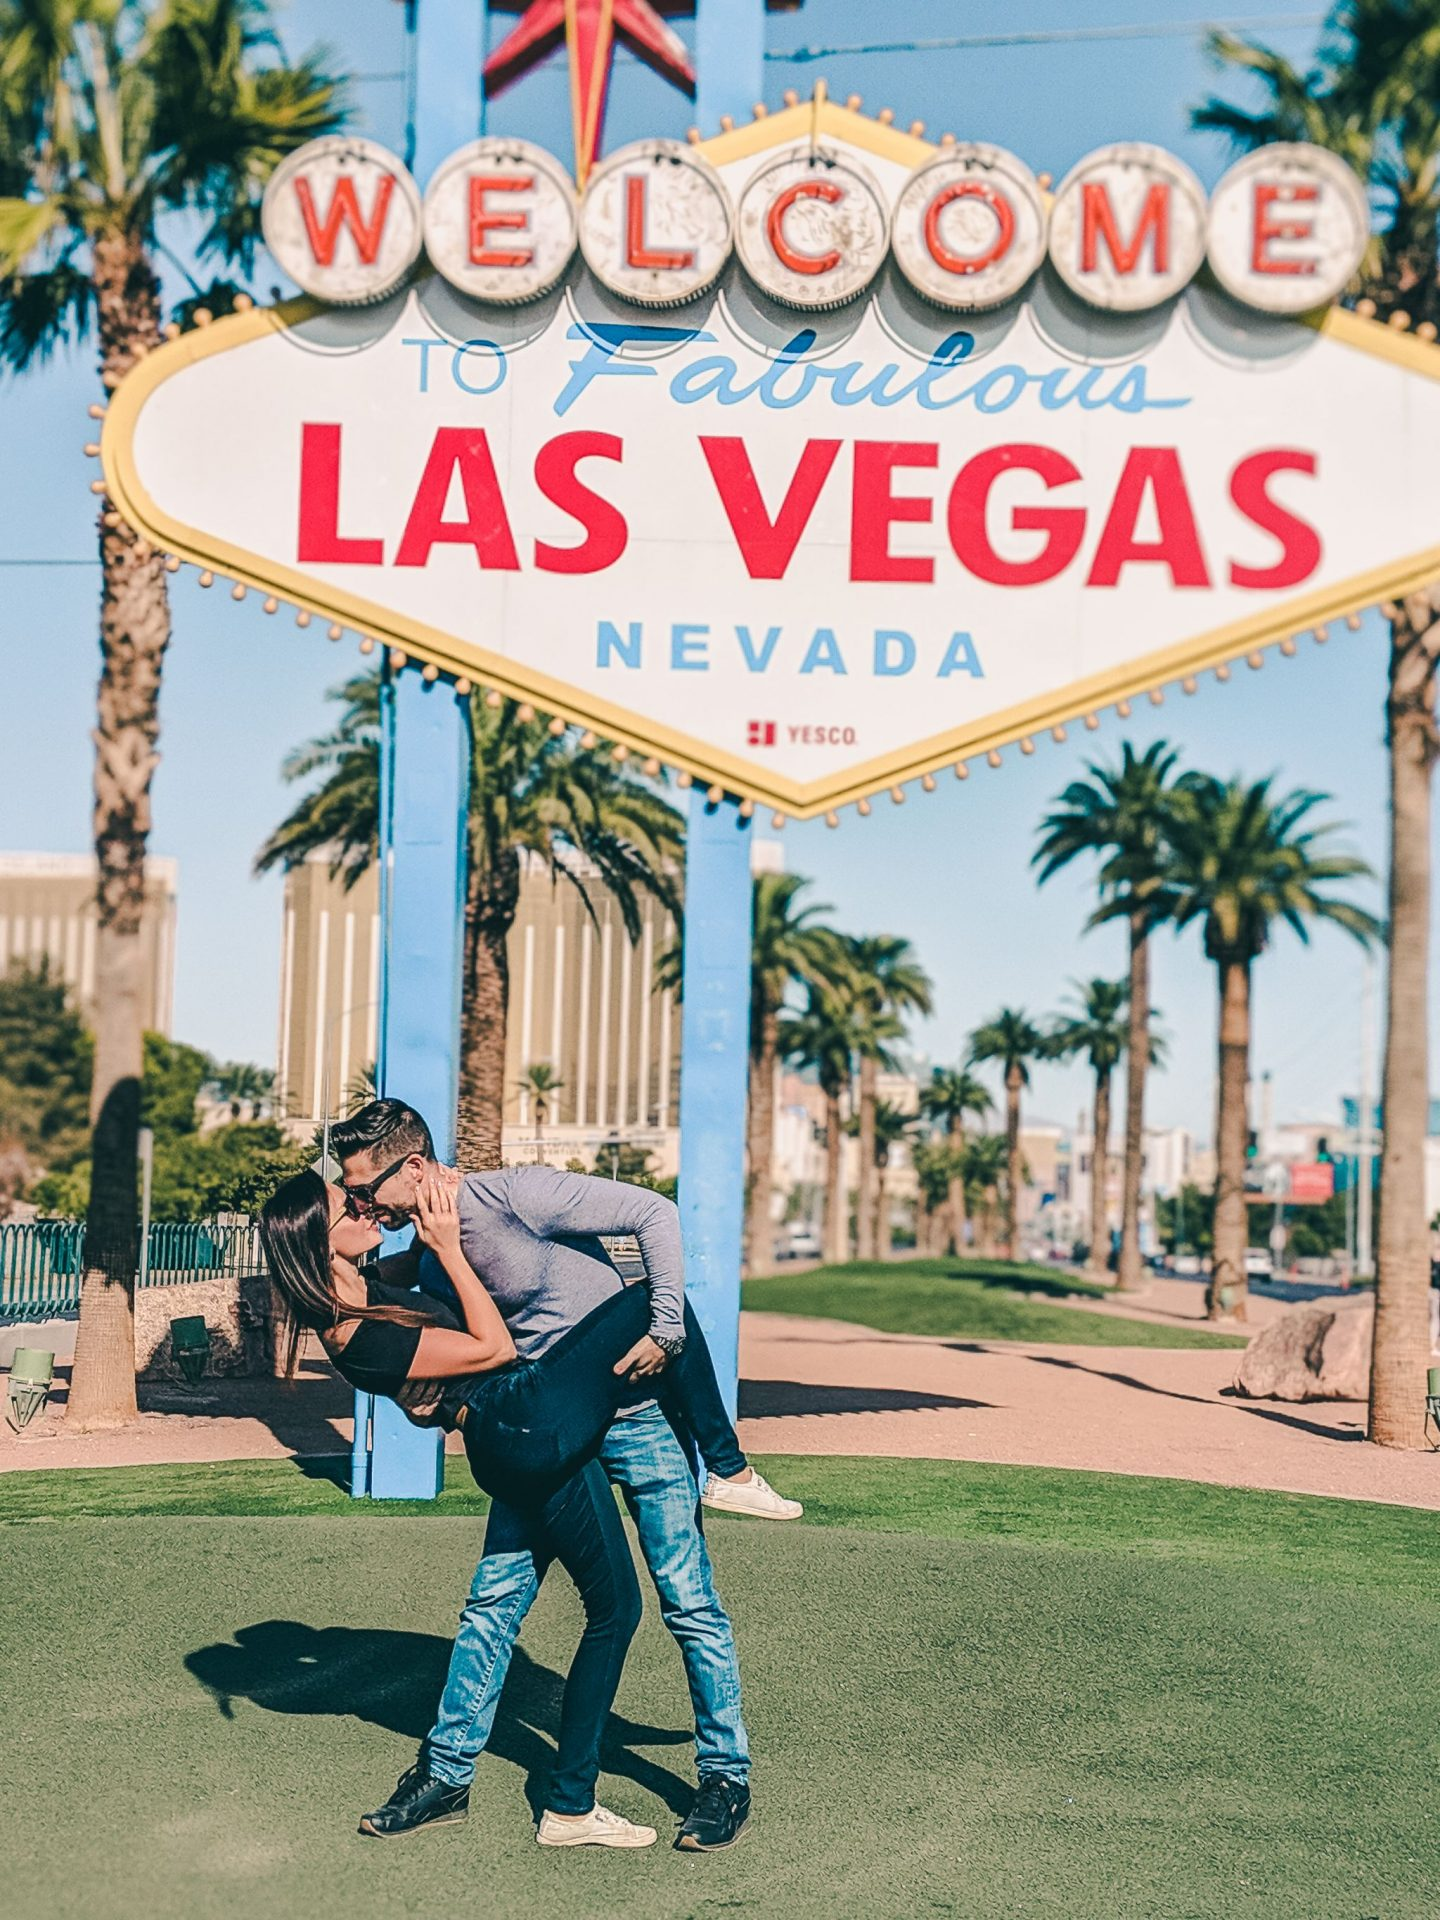 Welcome to Las Vegas Sign is the most instagramable spot in Vegas - by @danandnatty